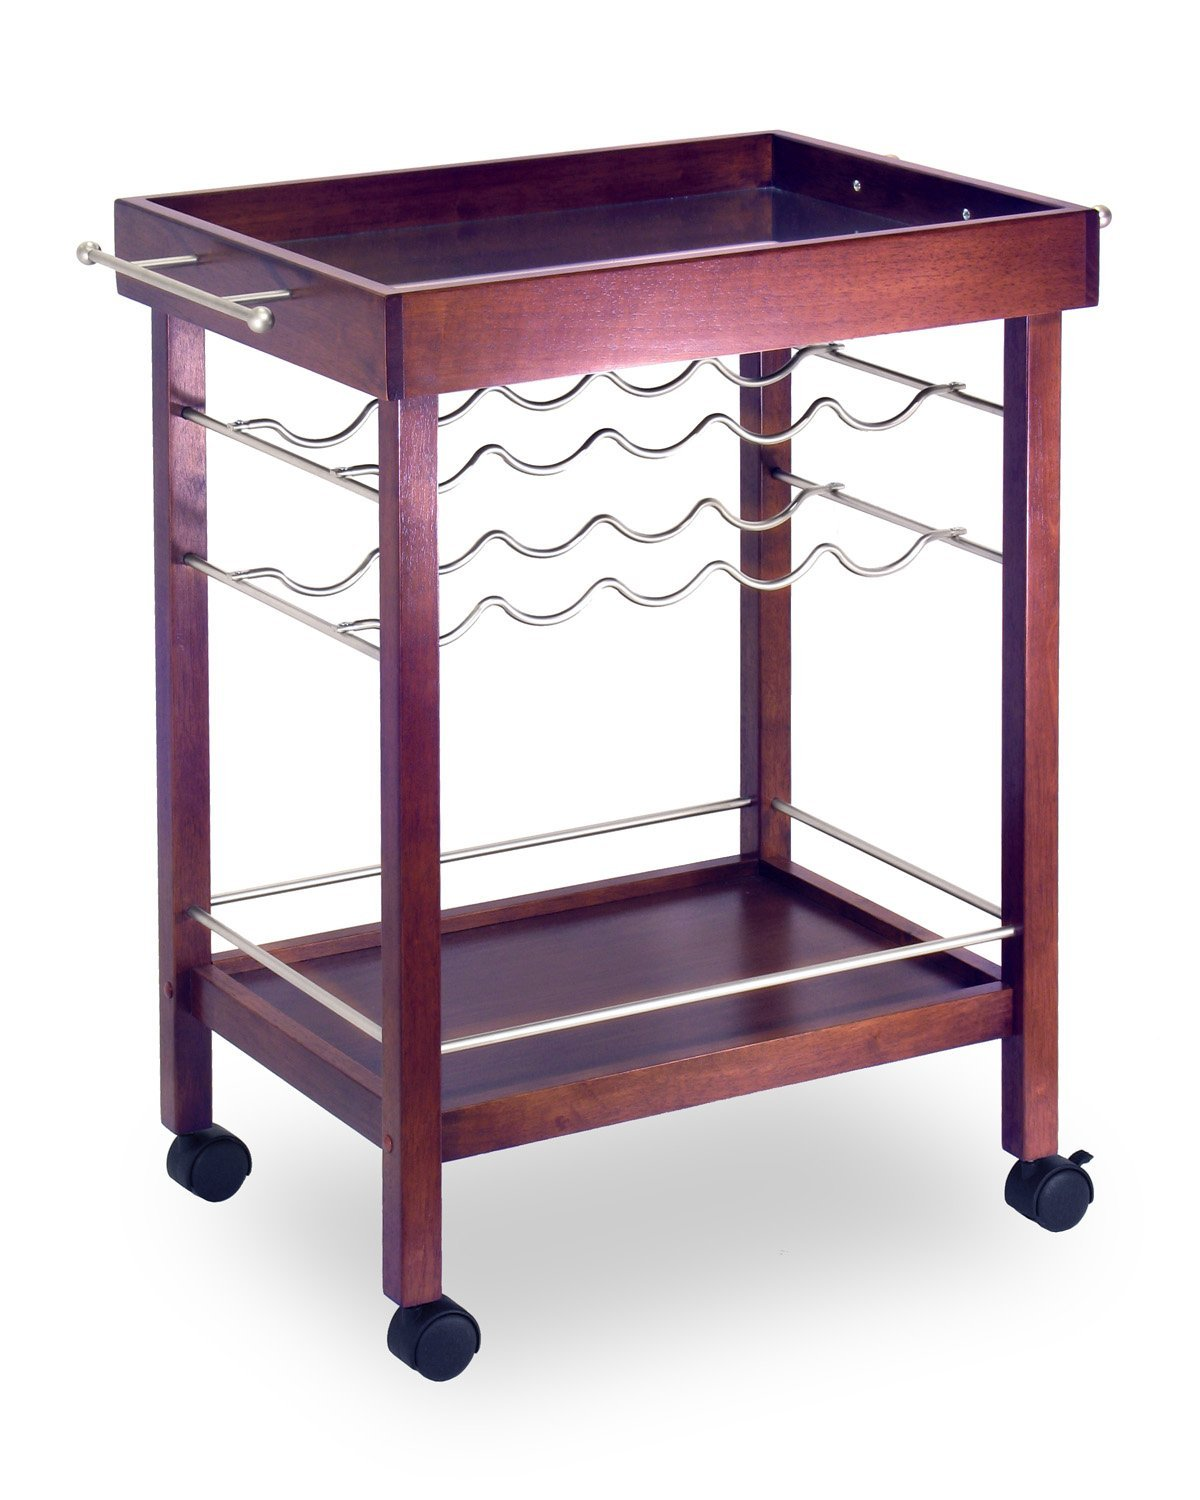 Winsome Wood Bar Cart, Espresso Finish by Winsome